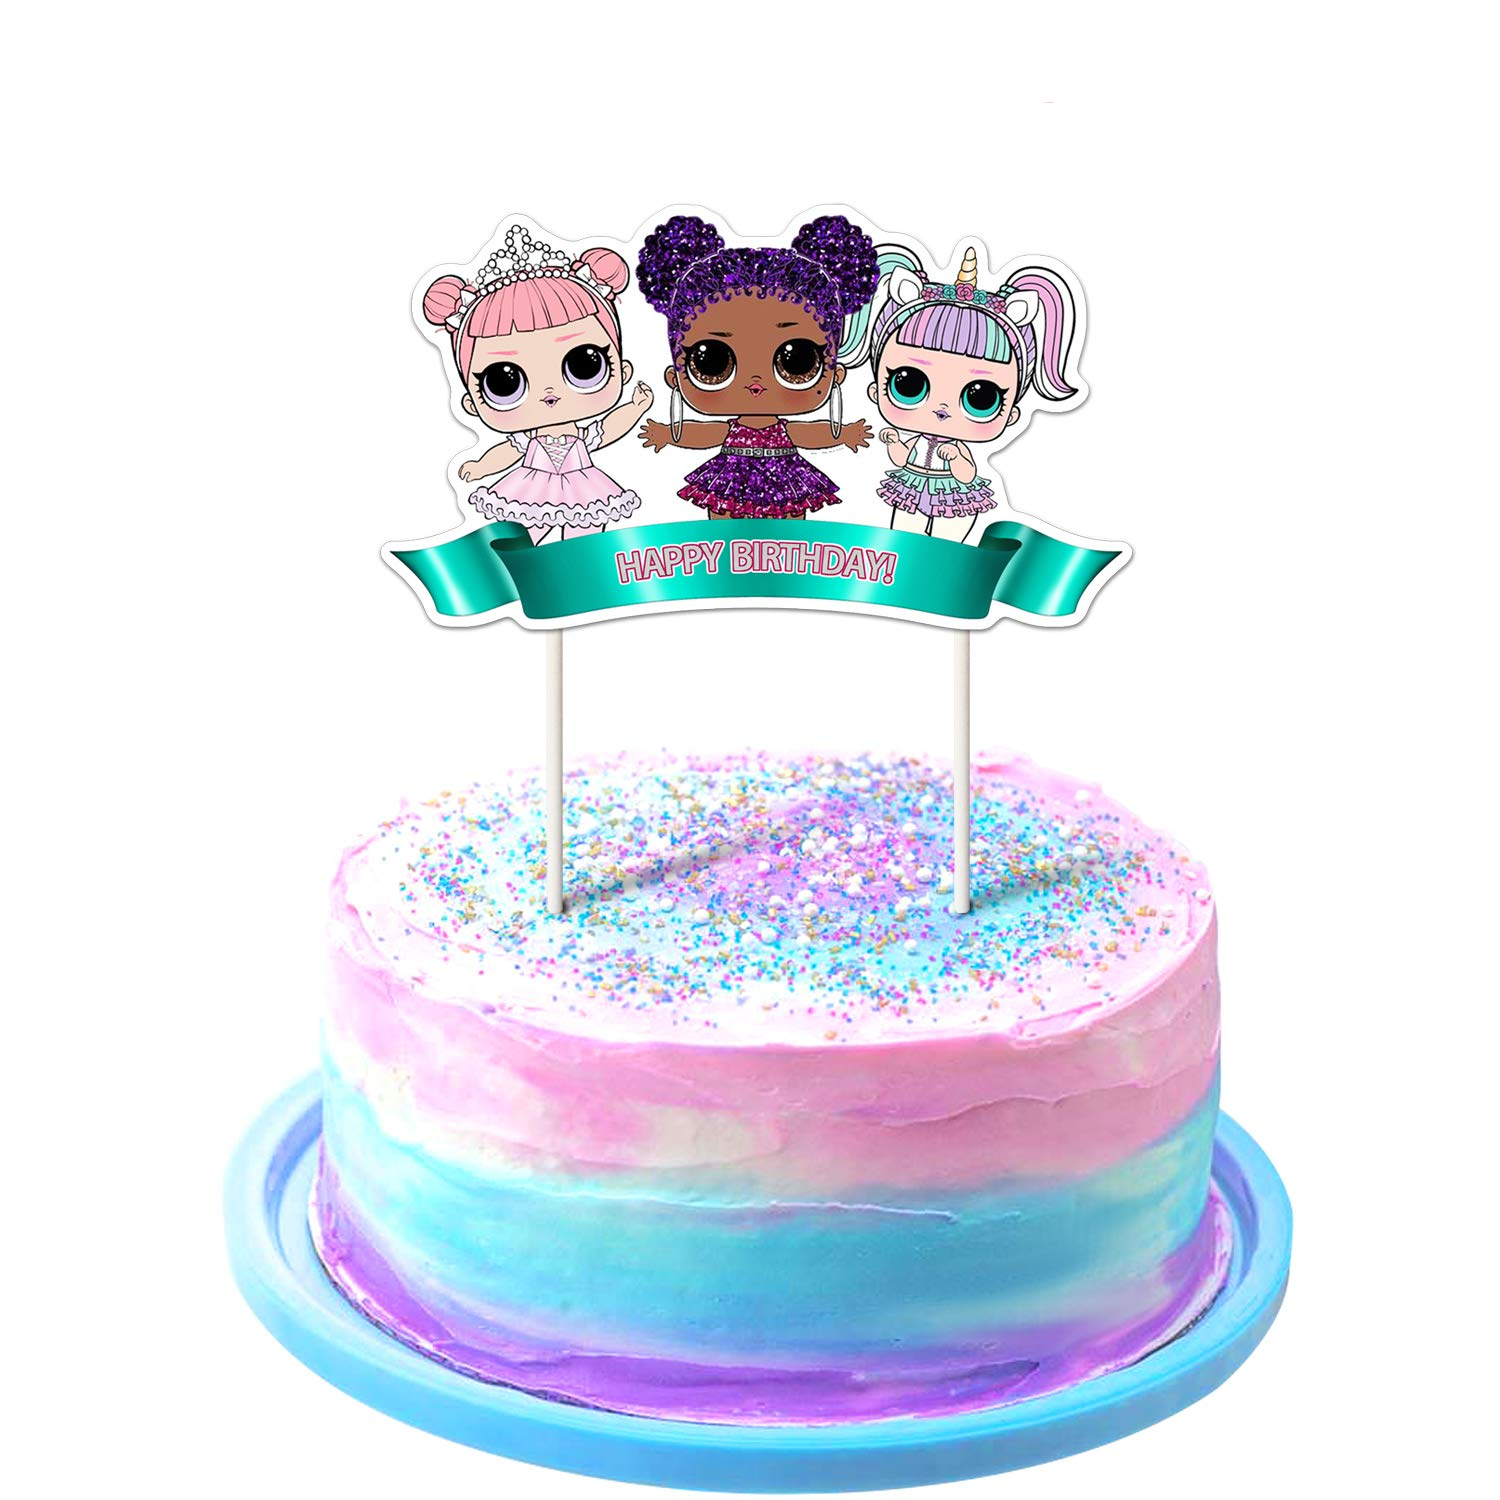 LOL Cake Topper 1st Birthday Toppers Cute Girls Dolls Bday Decorations Theme Party